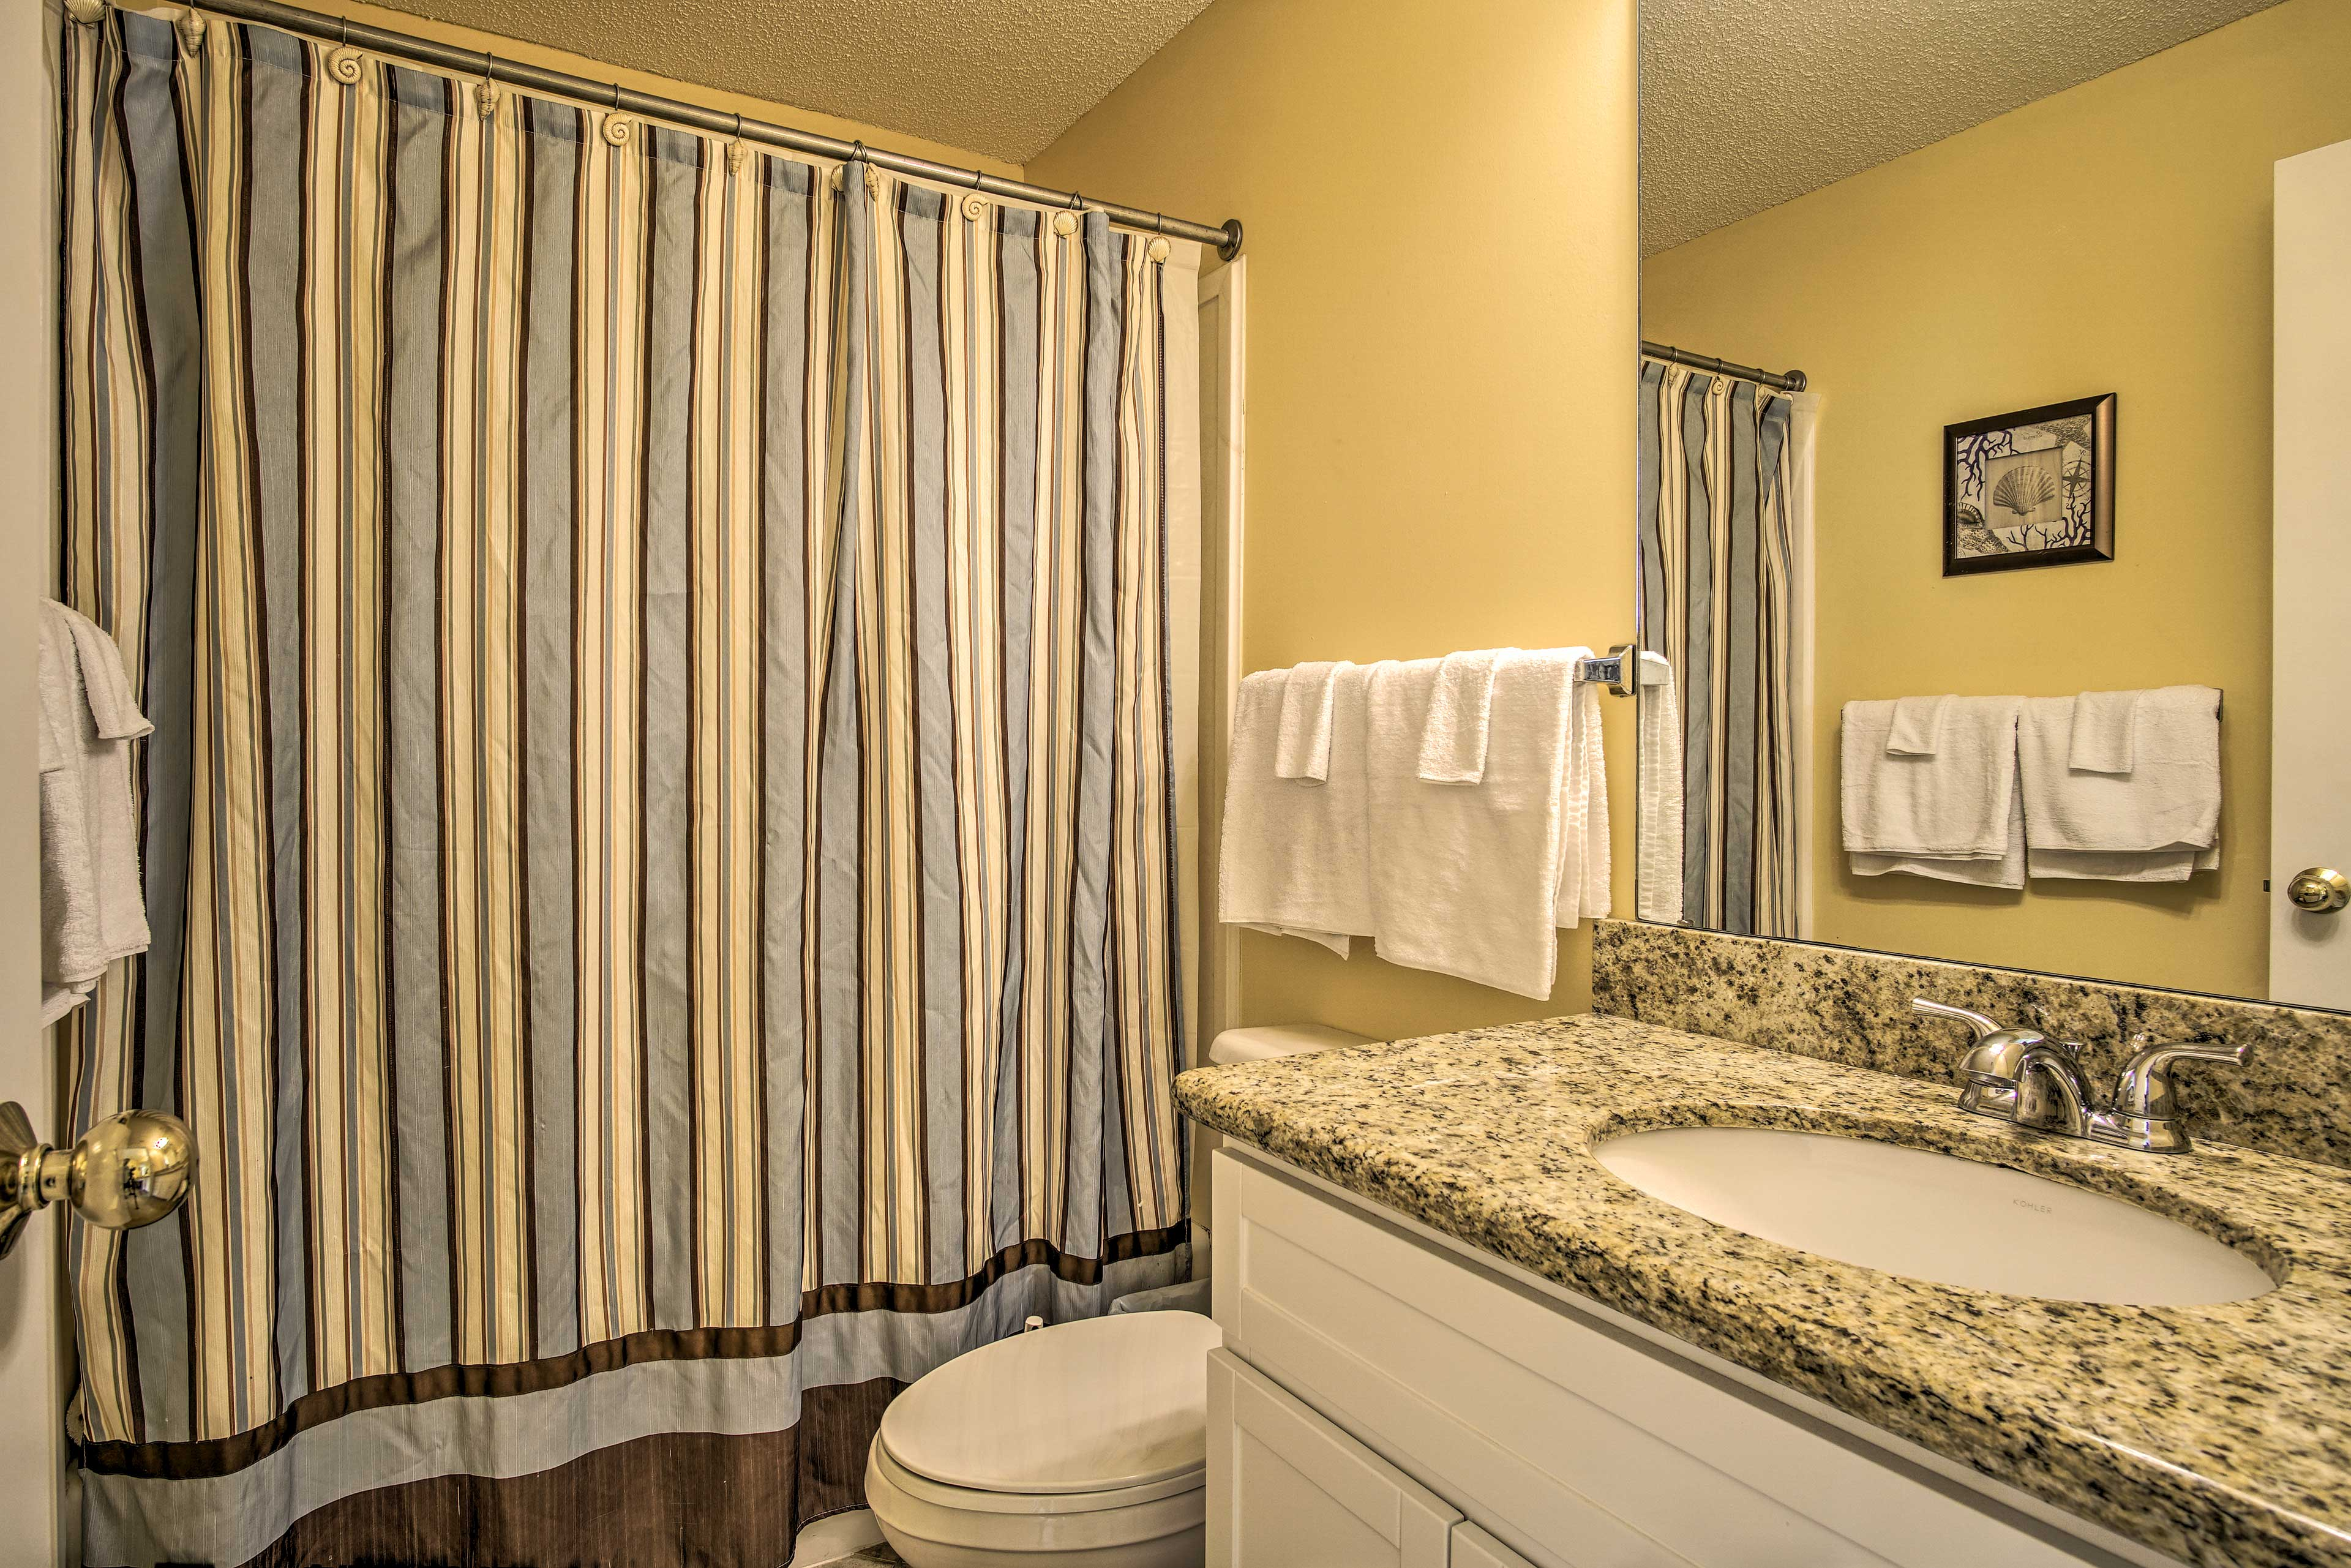 Rinse off in the shower/tub combo in the master en-suite bathroom.